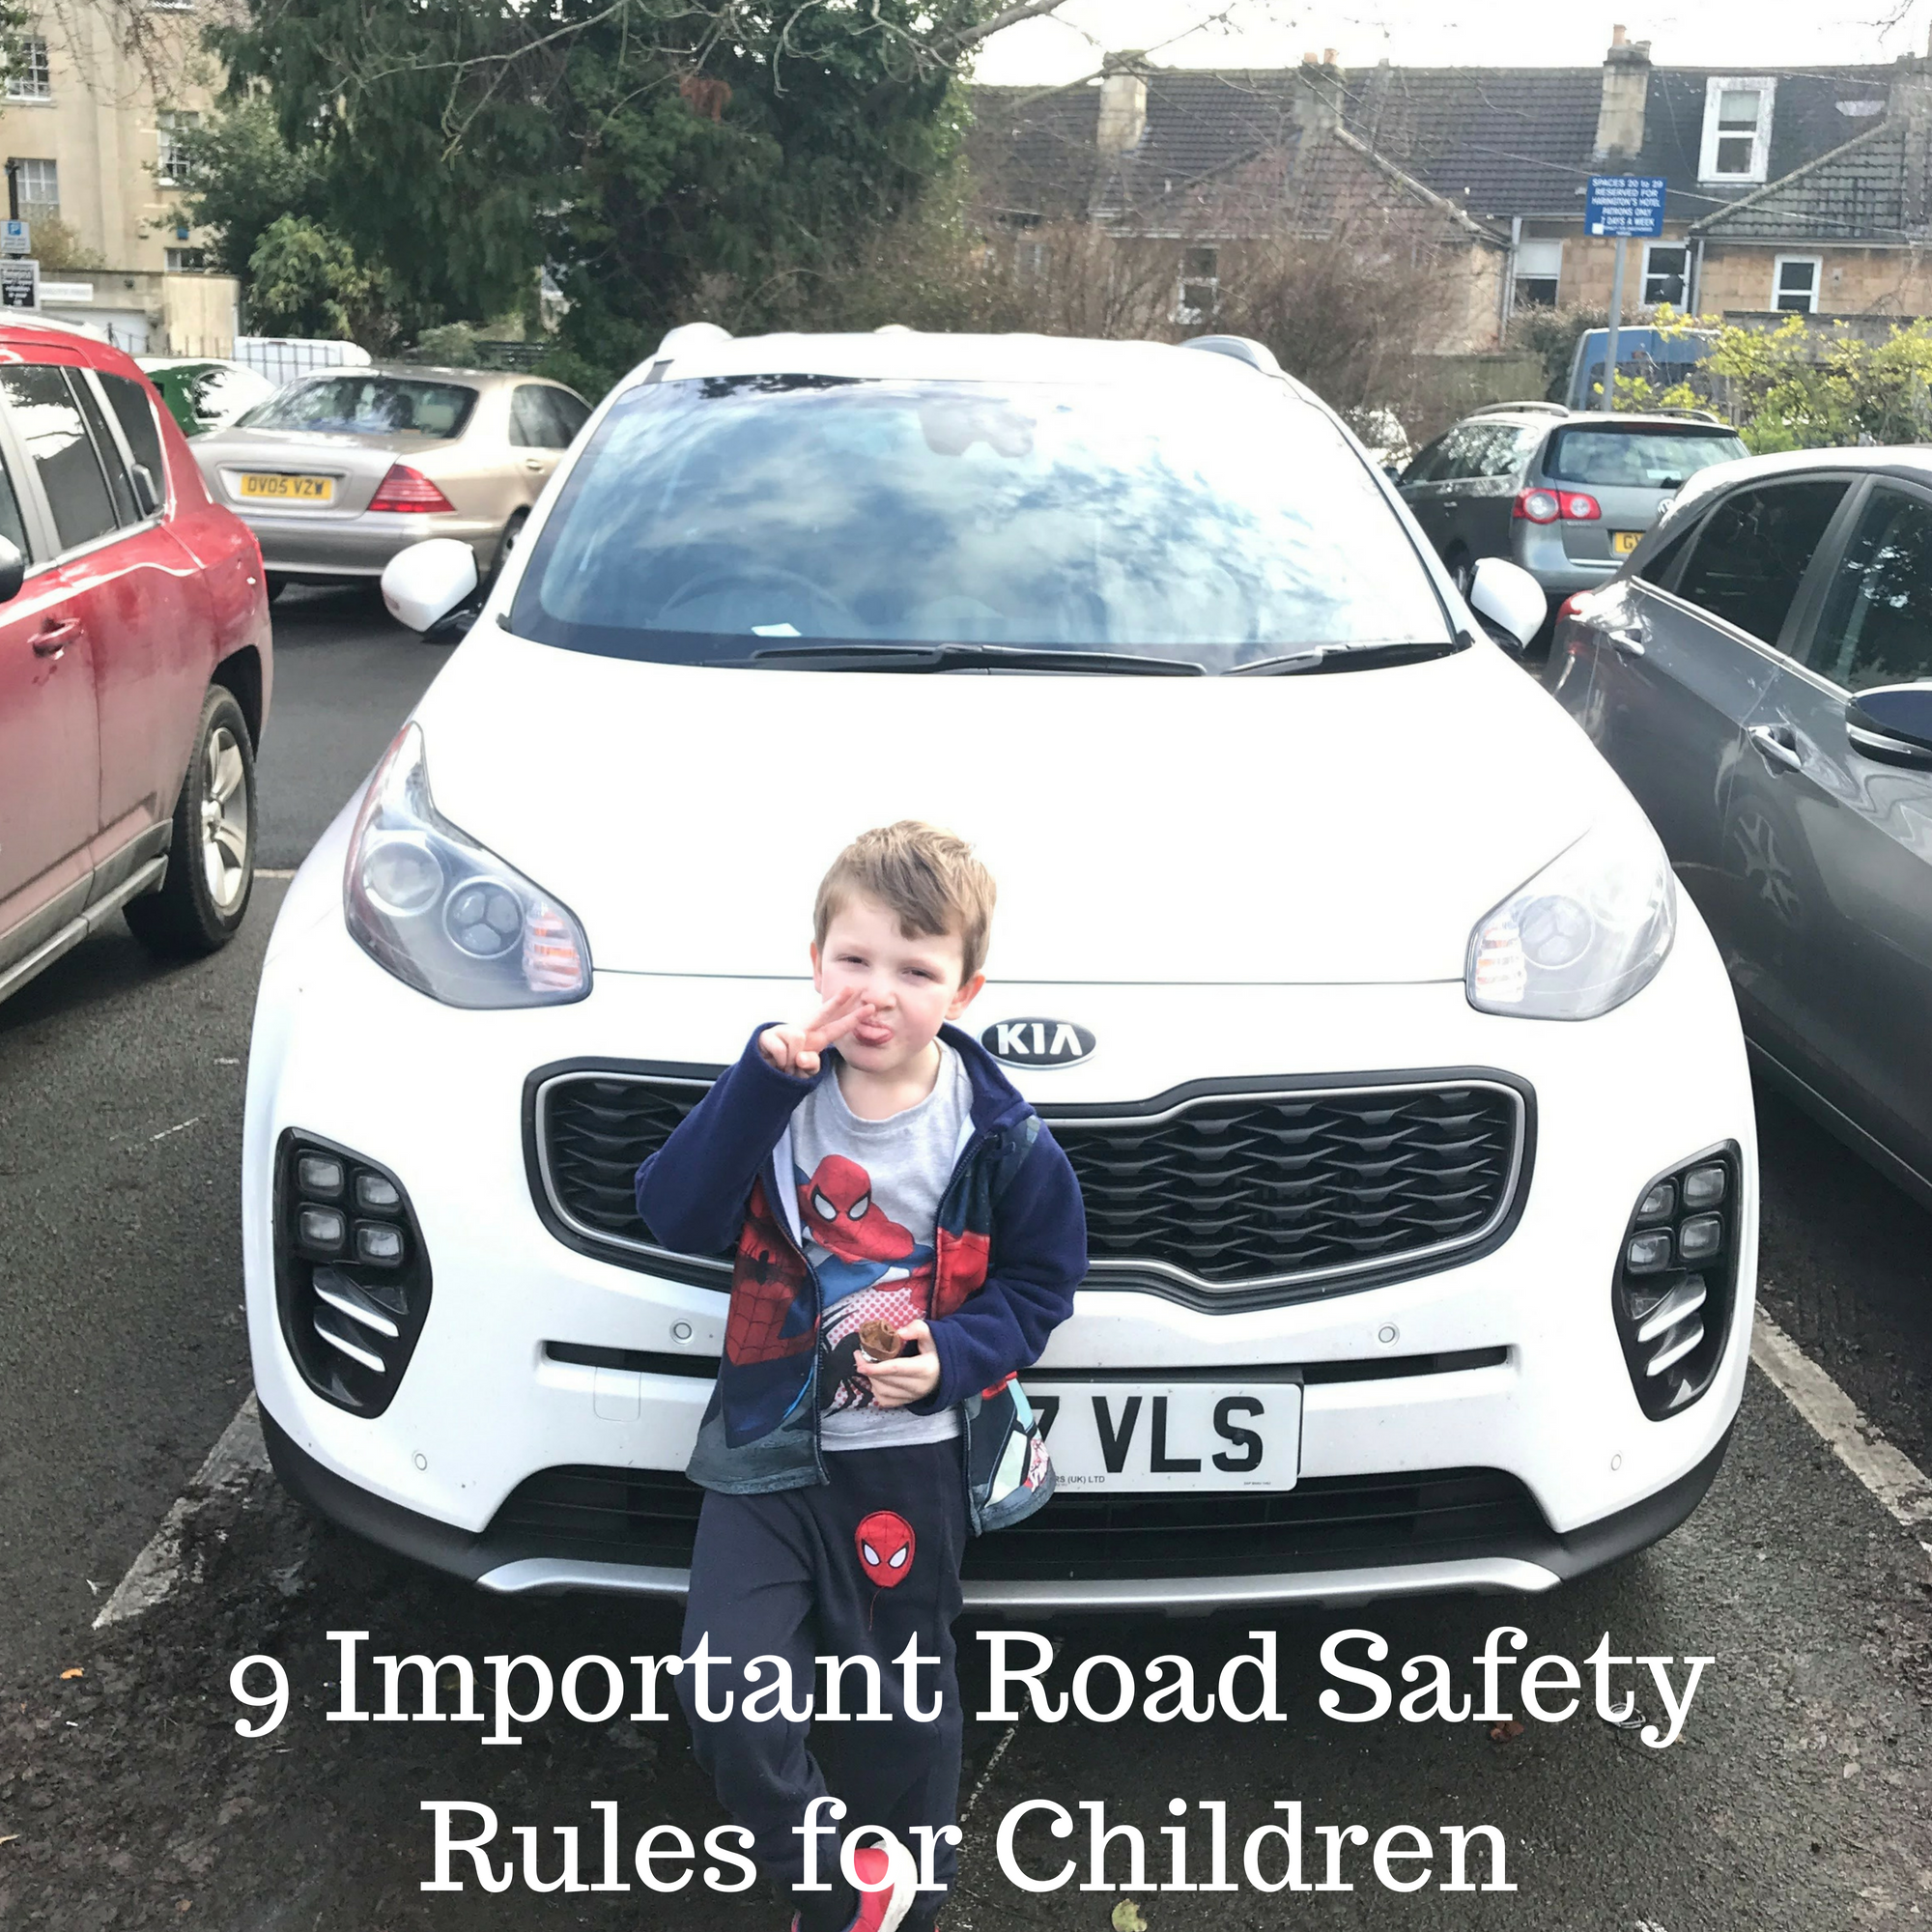 9 Important Road Safety Rules for Children